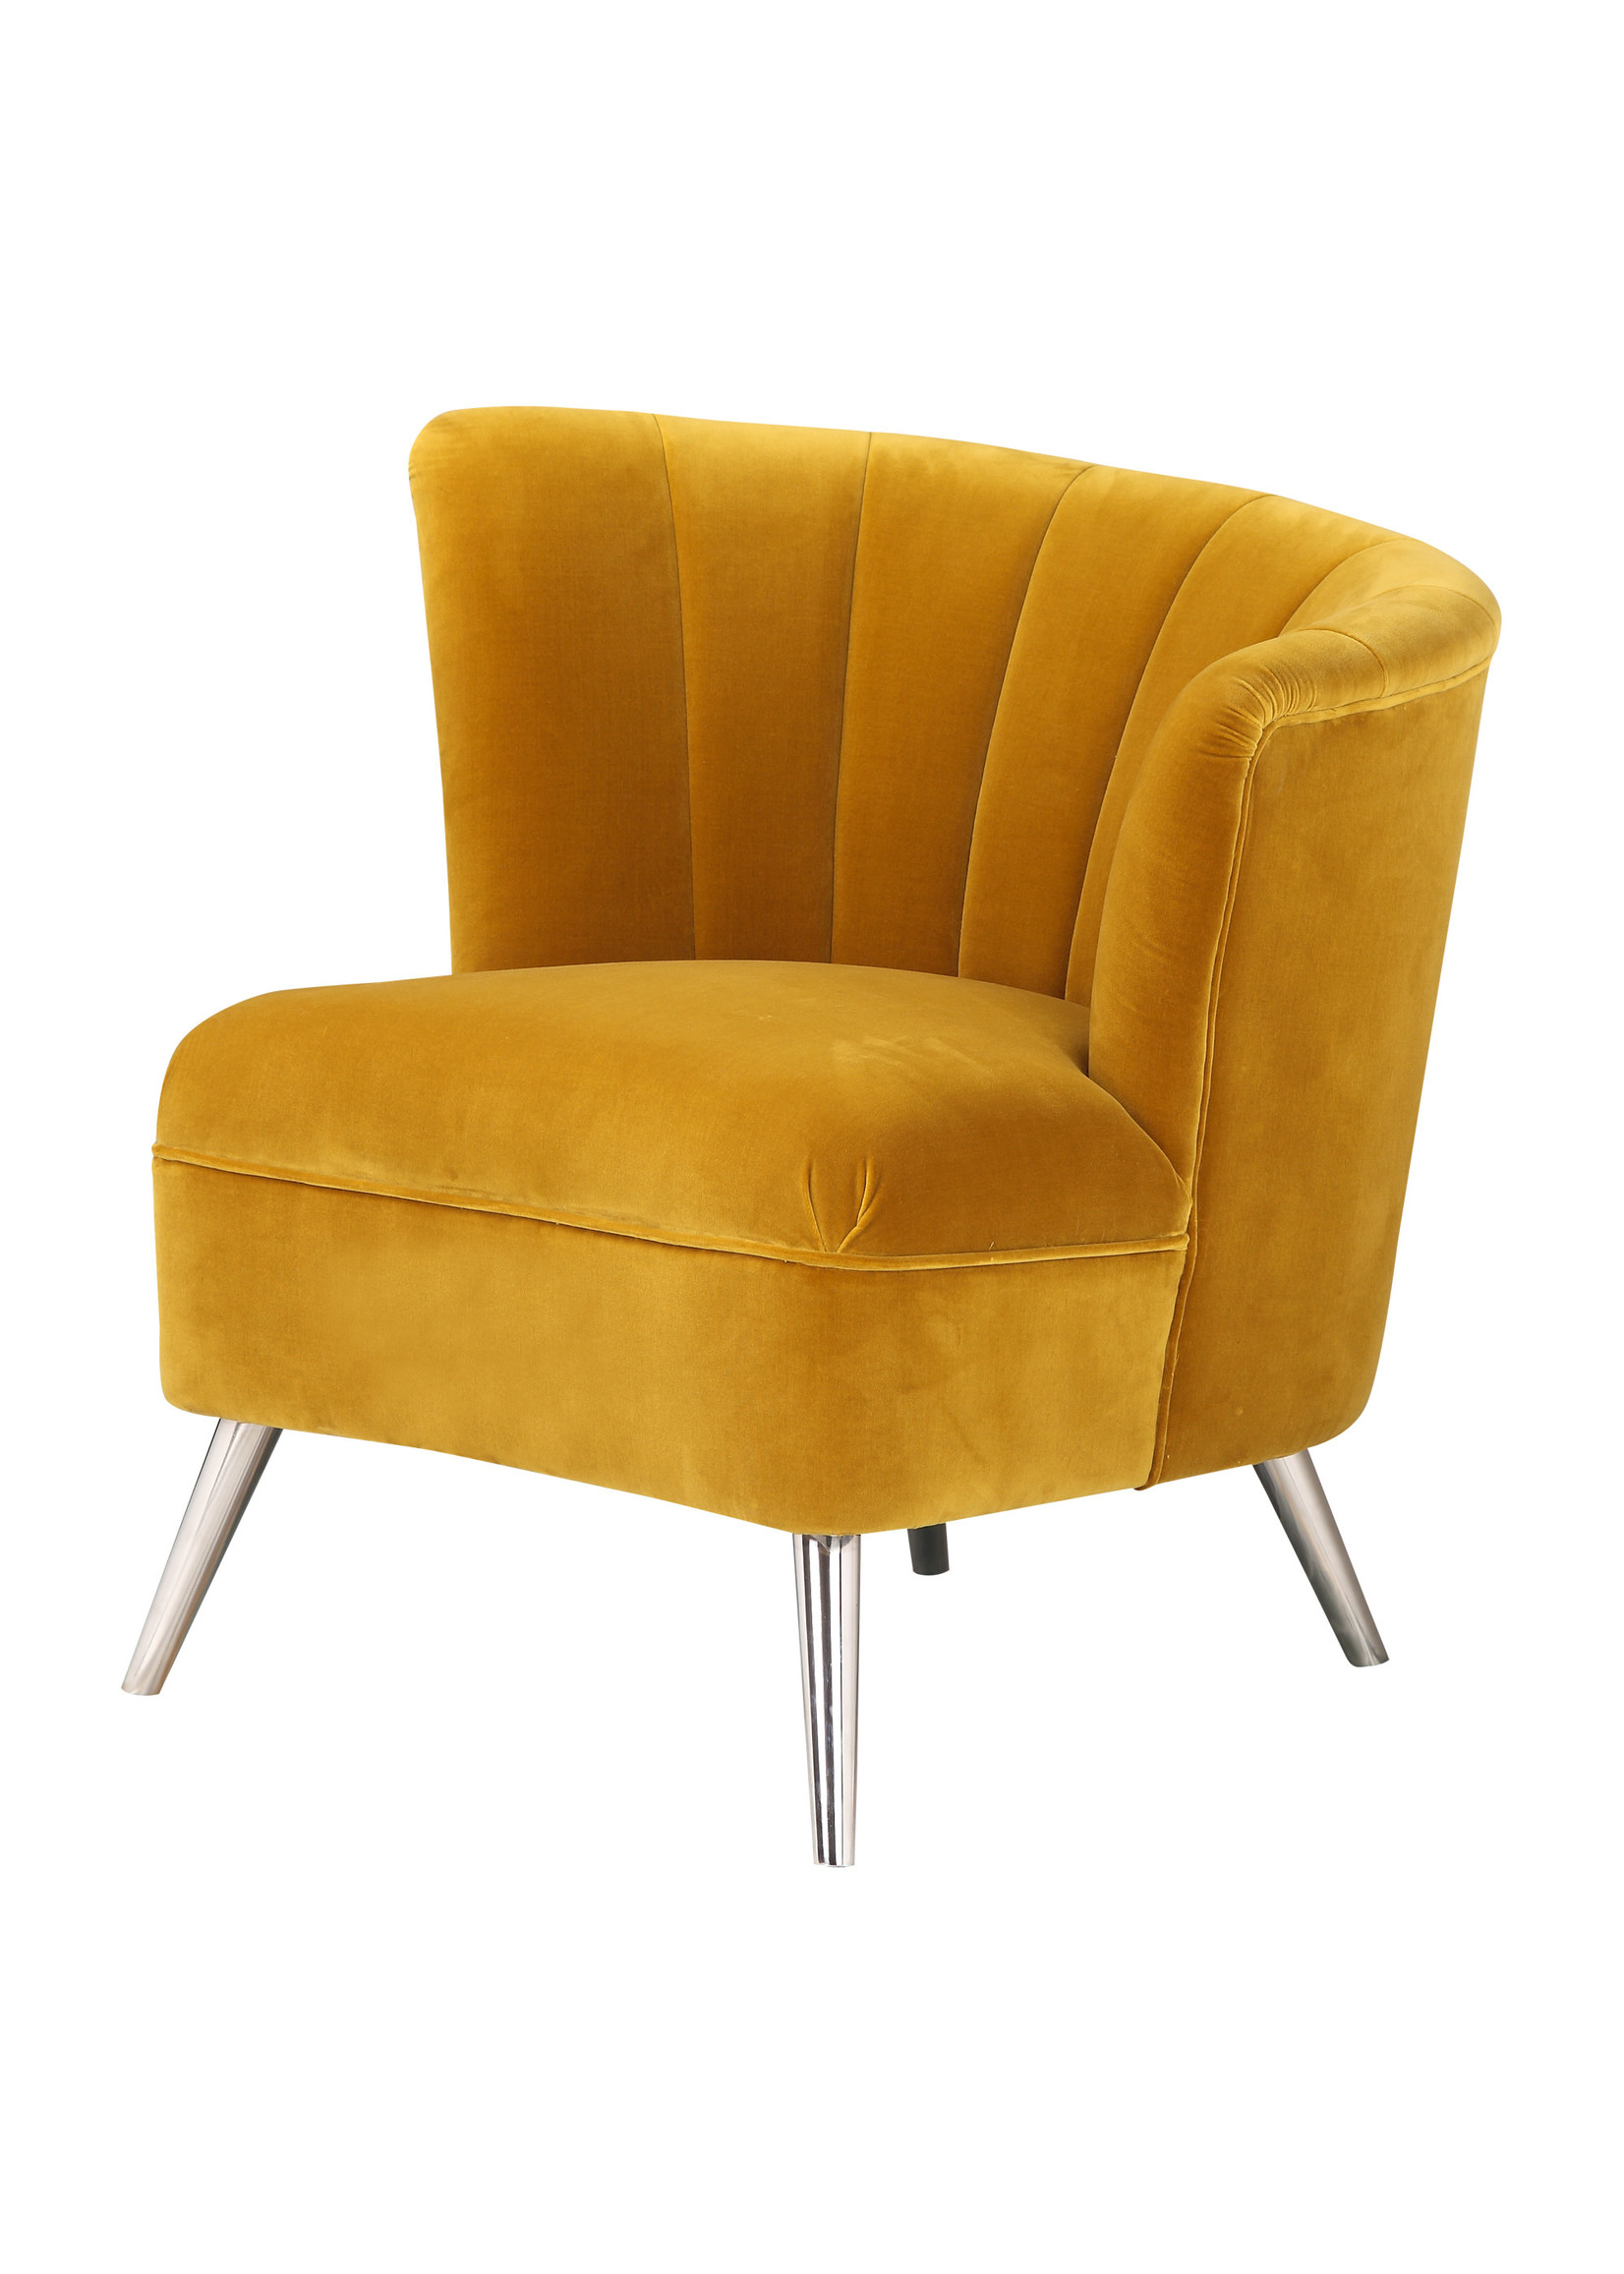 Moes Home Collection Layan Accent Chair Right Yellow by MOES